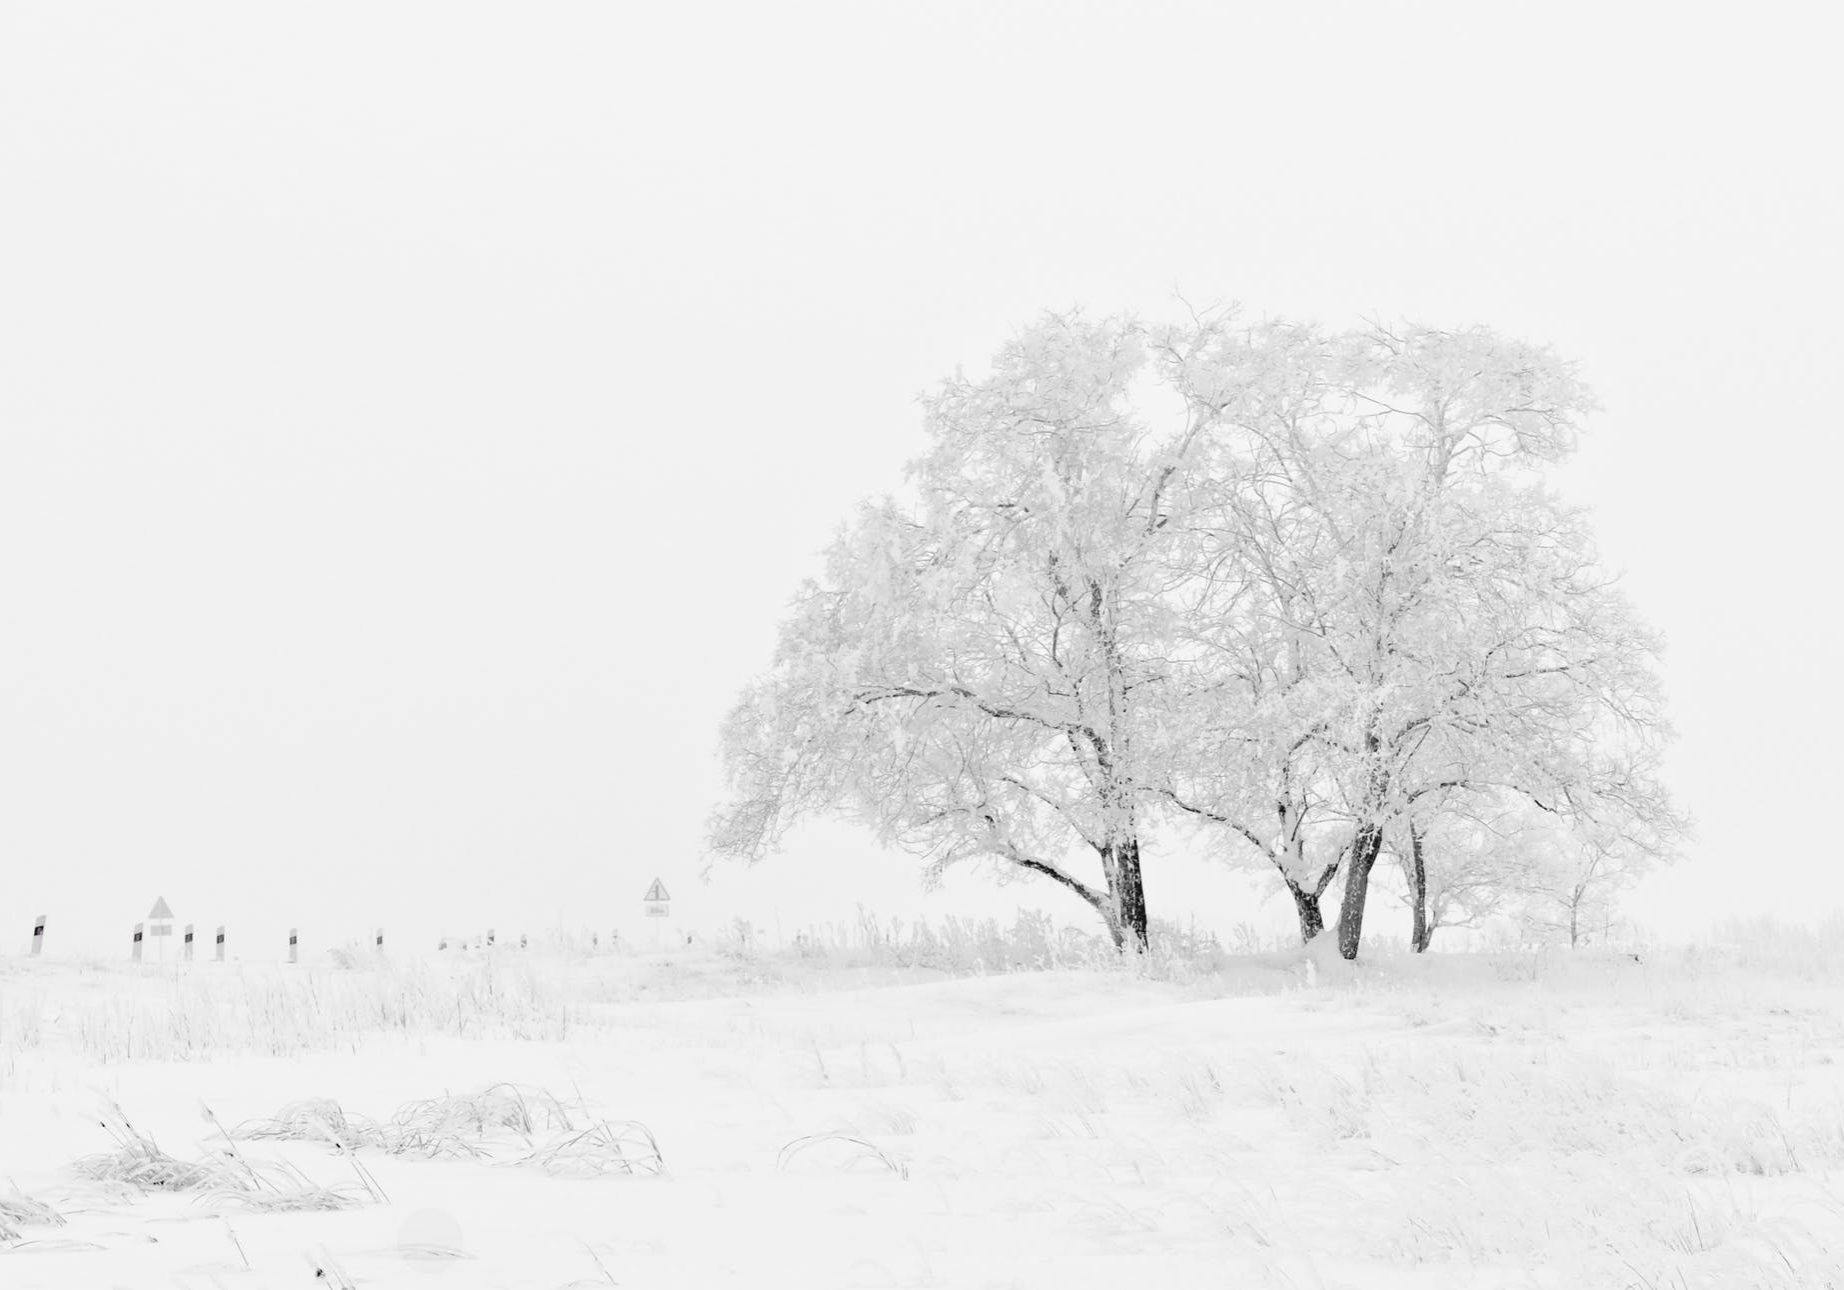 Winter Nature Season Trees 66284